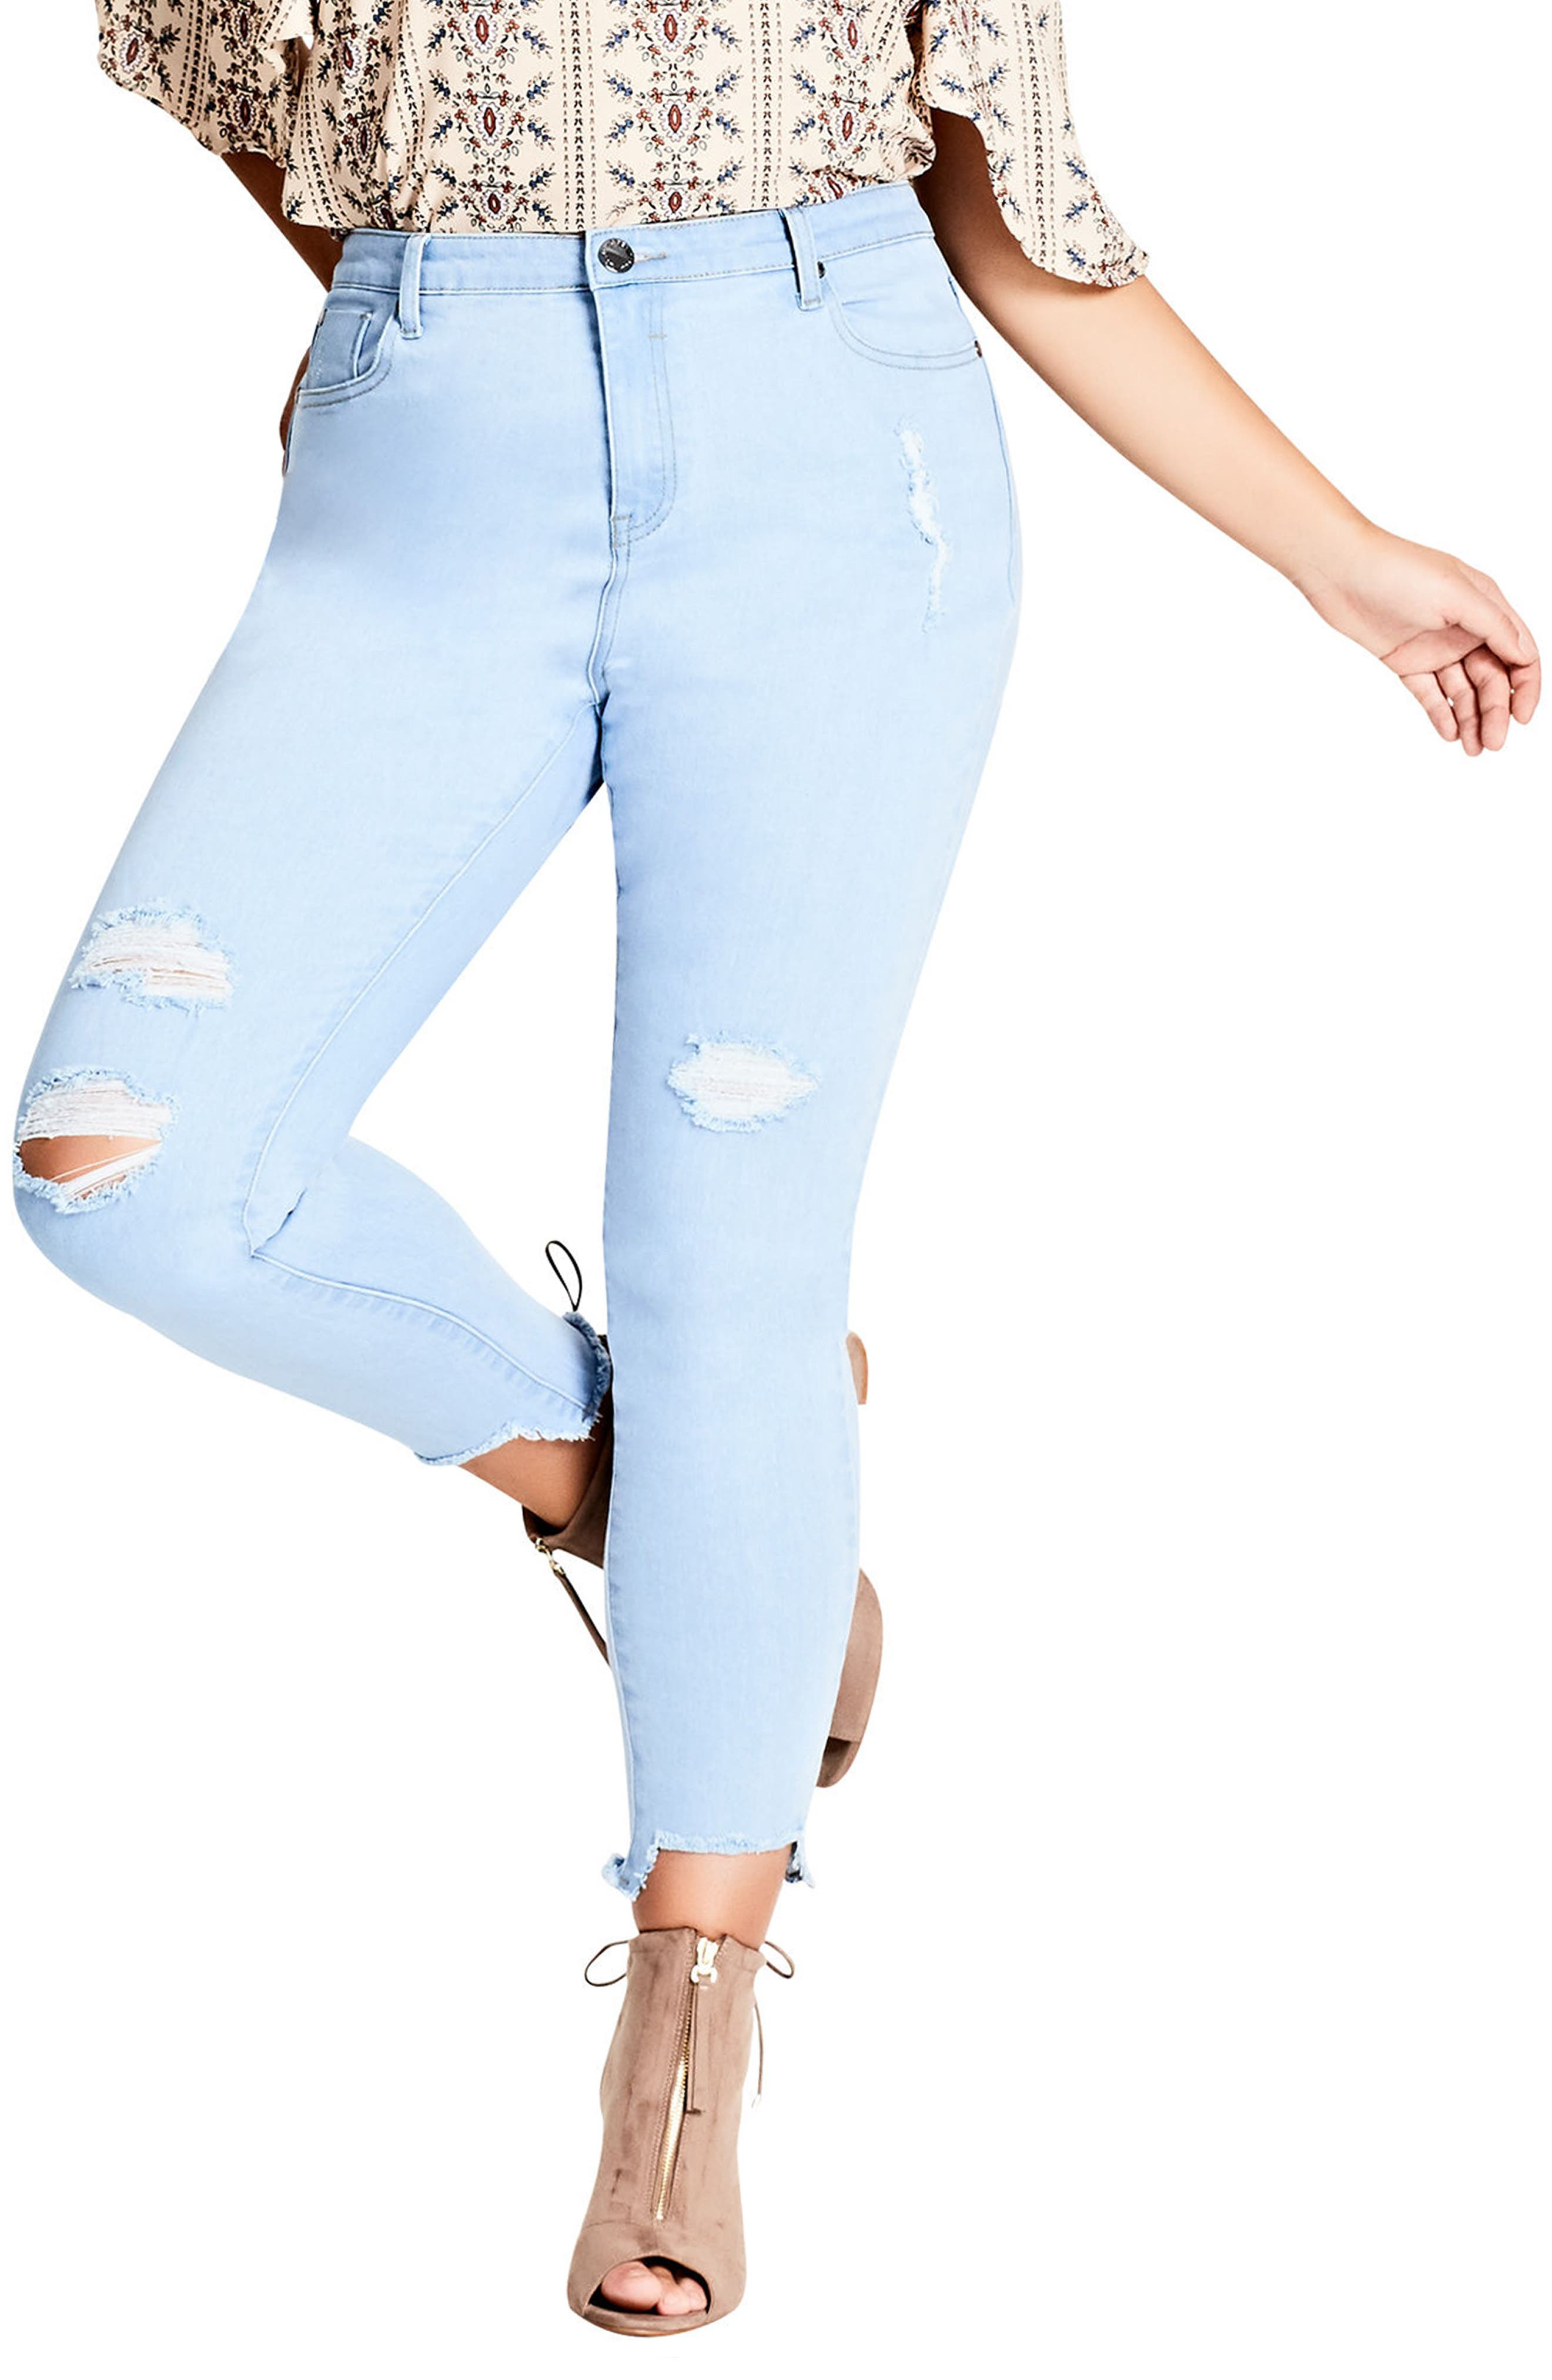 Ice Queen Crop Skinny Jeans,                             Main thumbnail 1, color,                             400